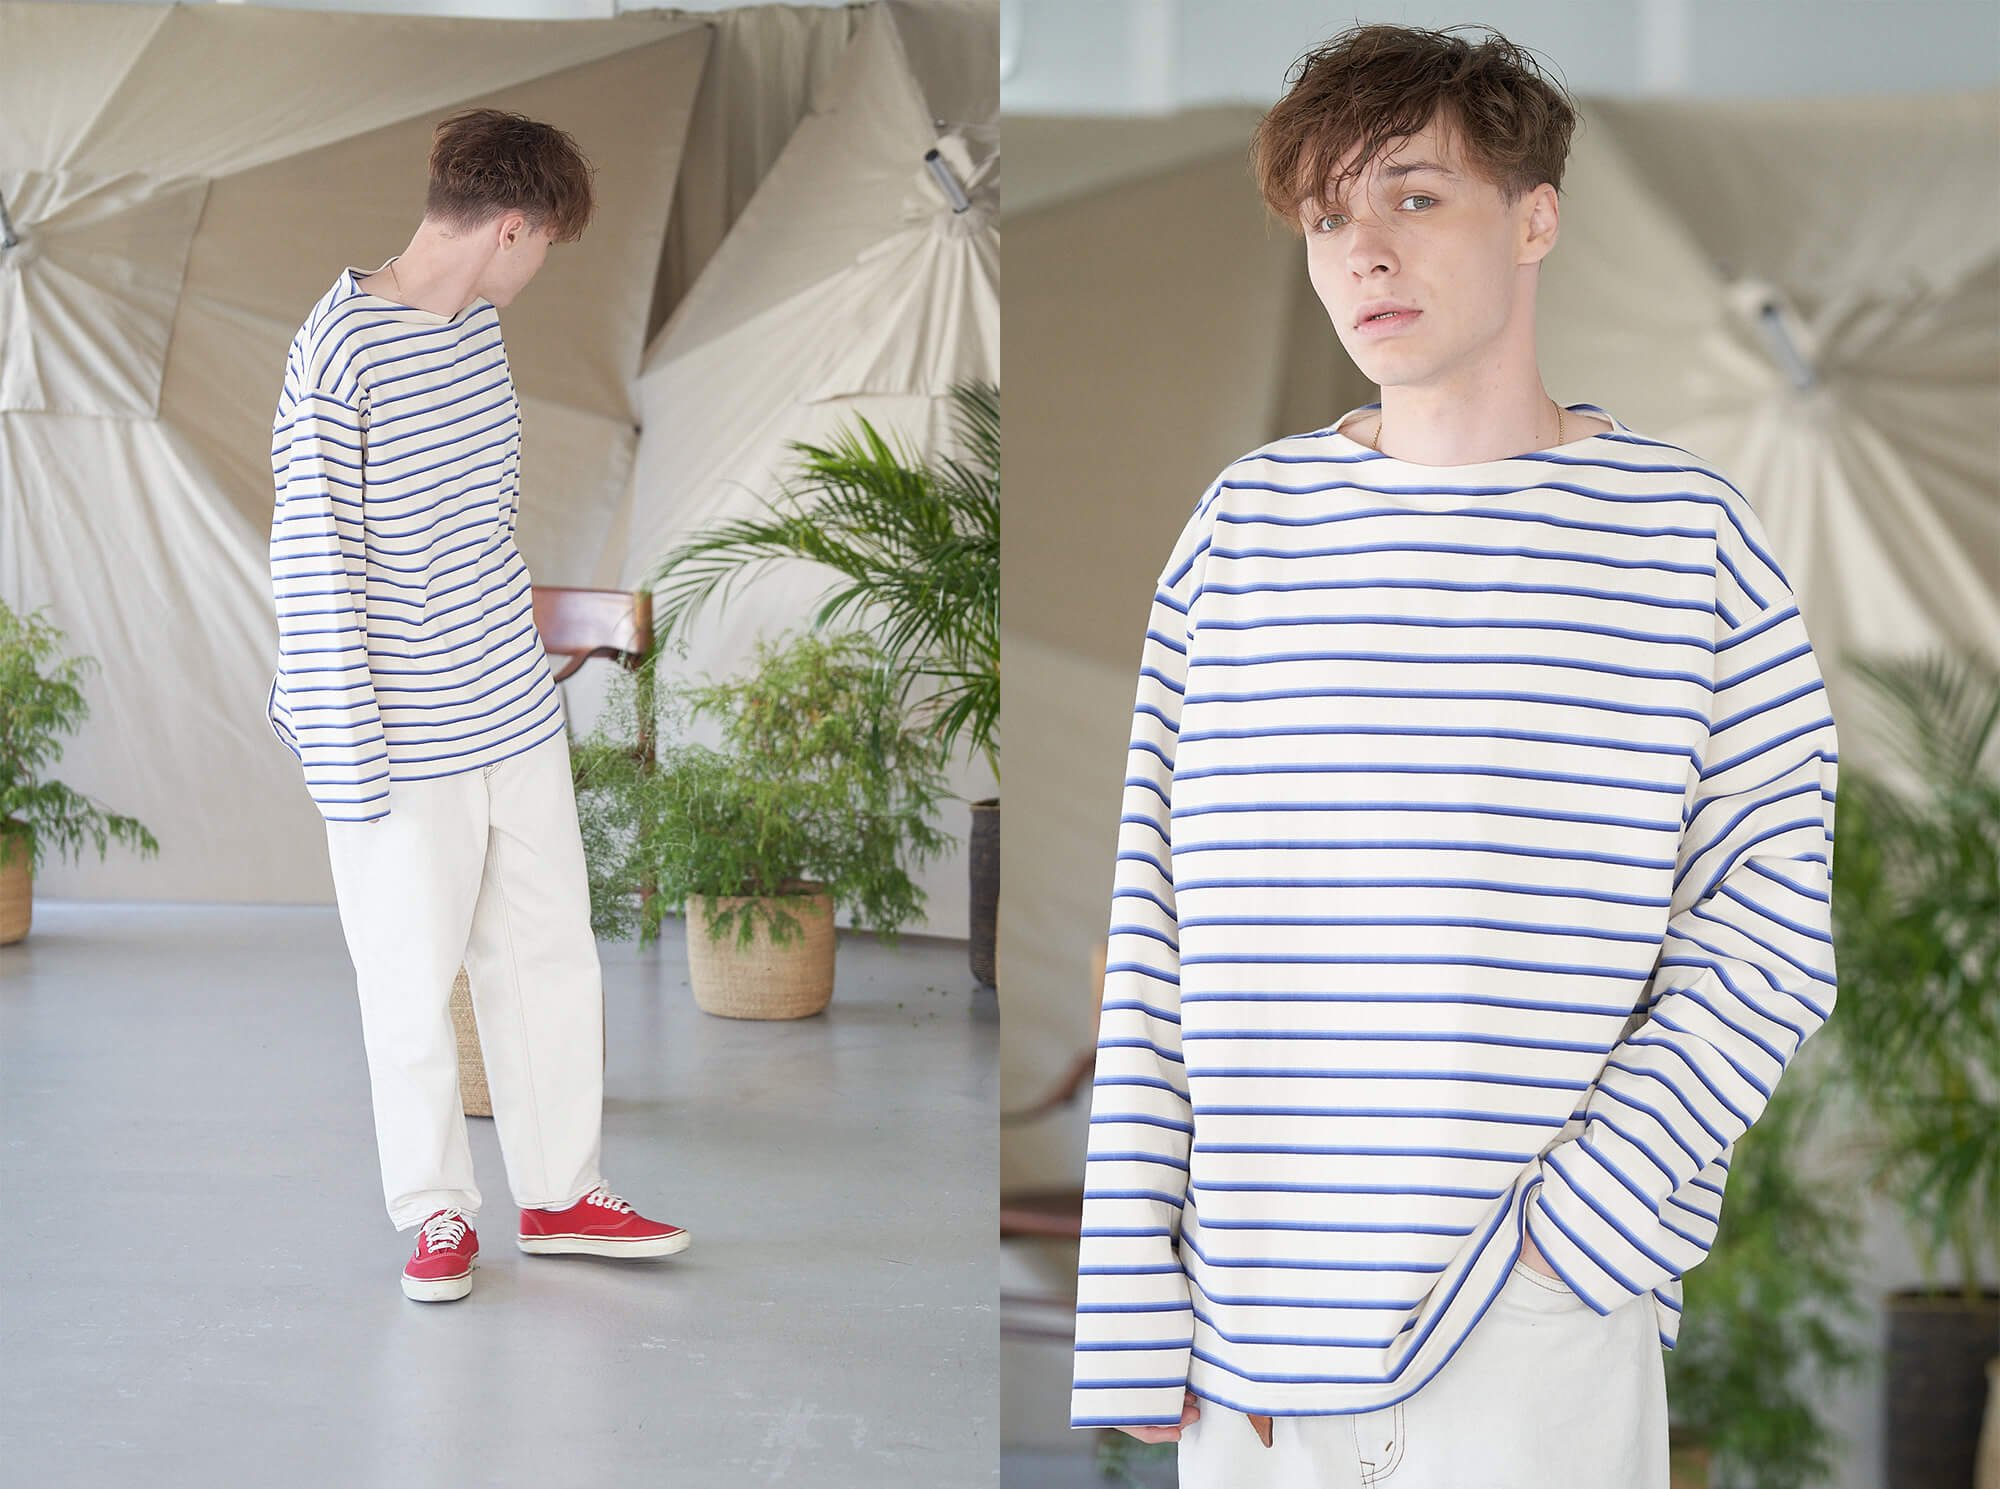 <img class='new_mark_img1' src='https://img.shop-pro.jp/img/new/icons14.gif' style='border:none;display:inline;margin:0px;padding:0px;width:auto;' />vintage cotton jersey breton shirt